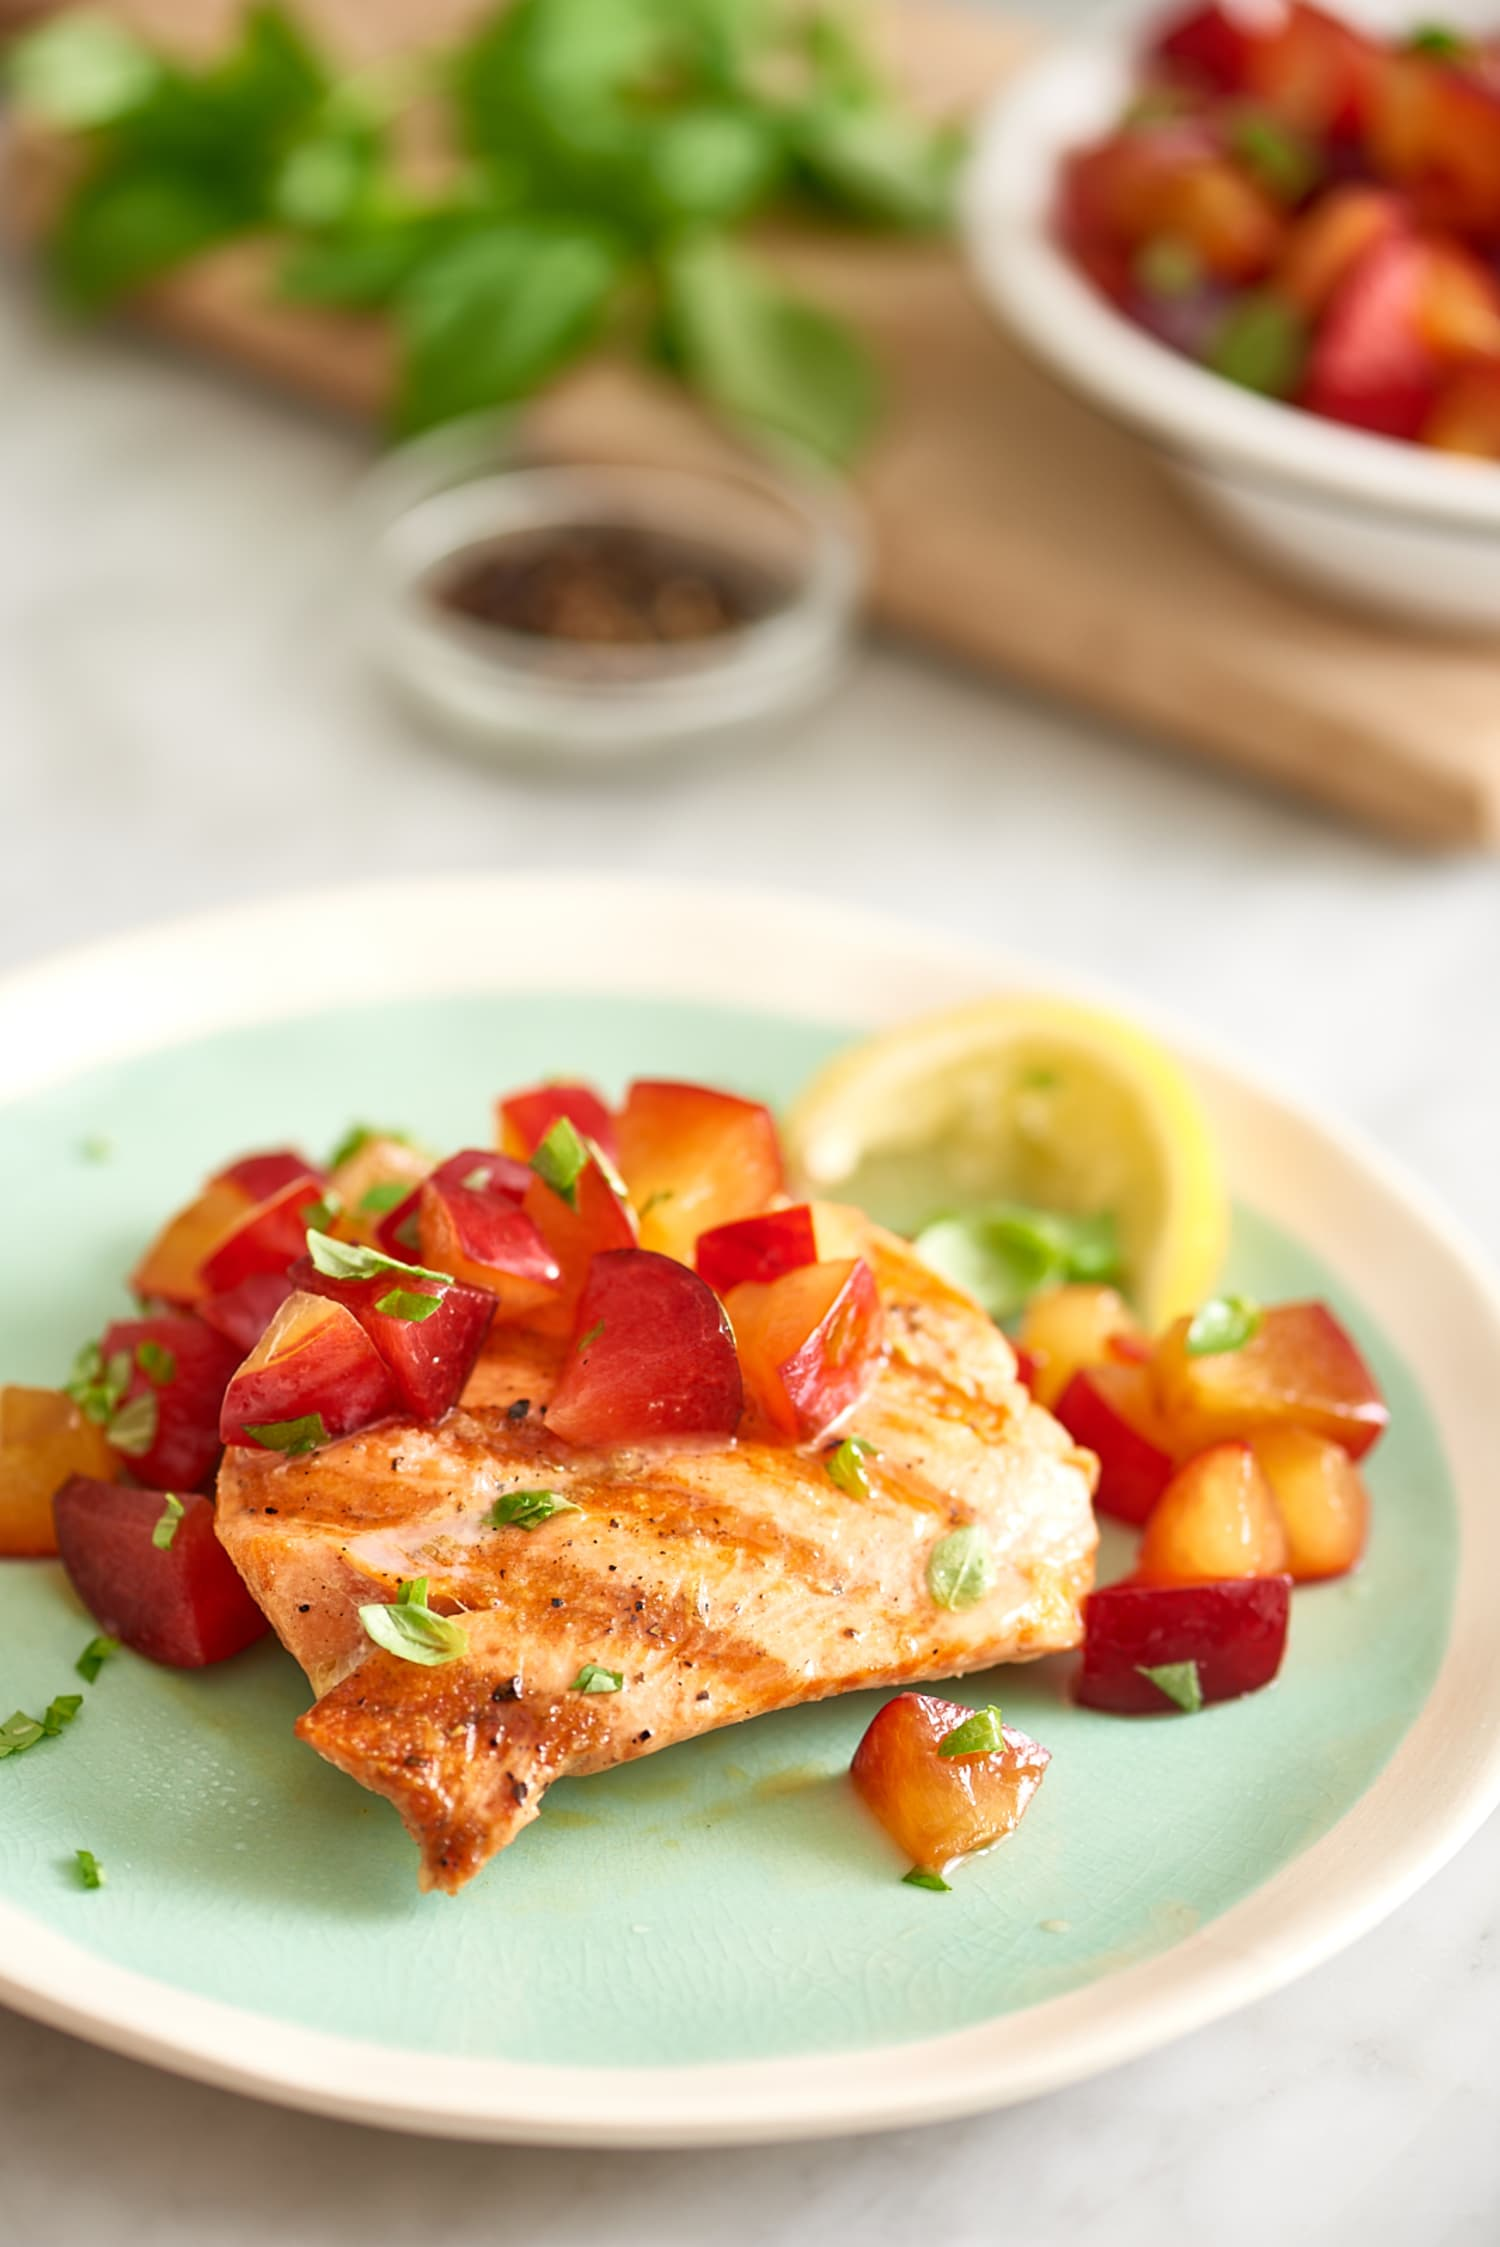 Recipe: Easy Grilled Salmon with Plum-Basil Relish